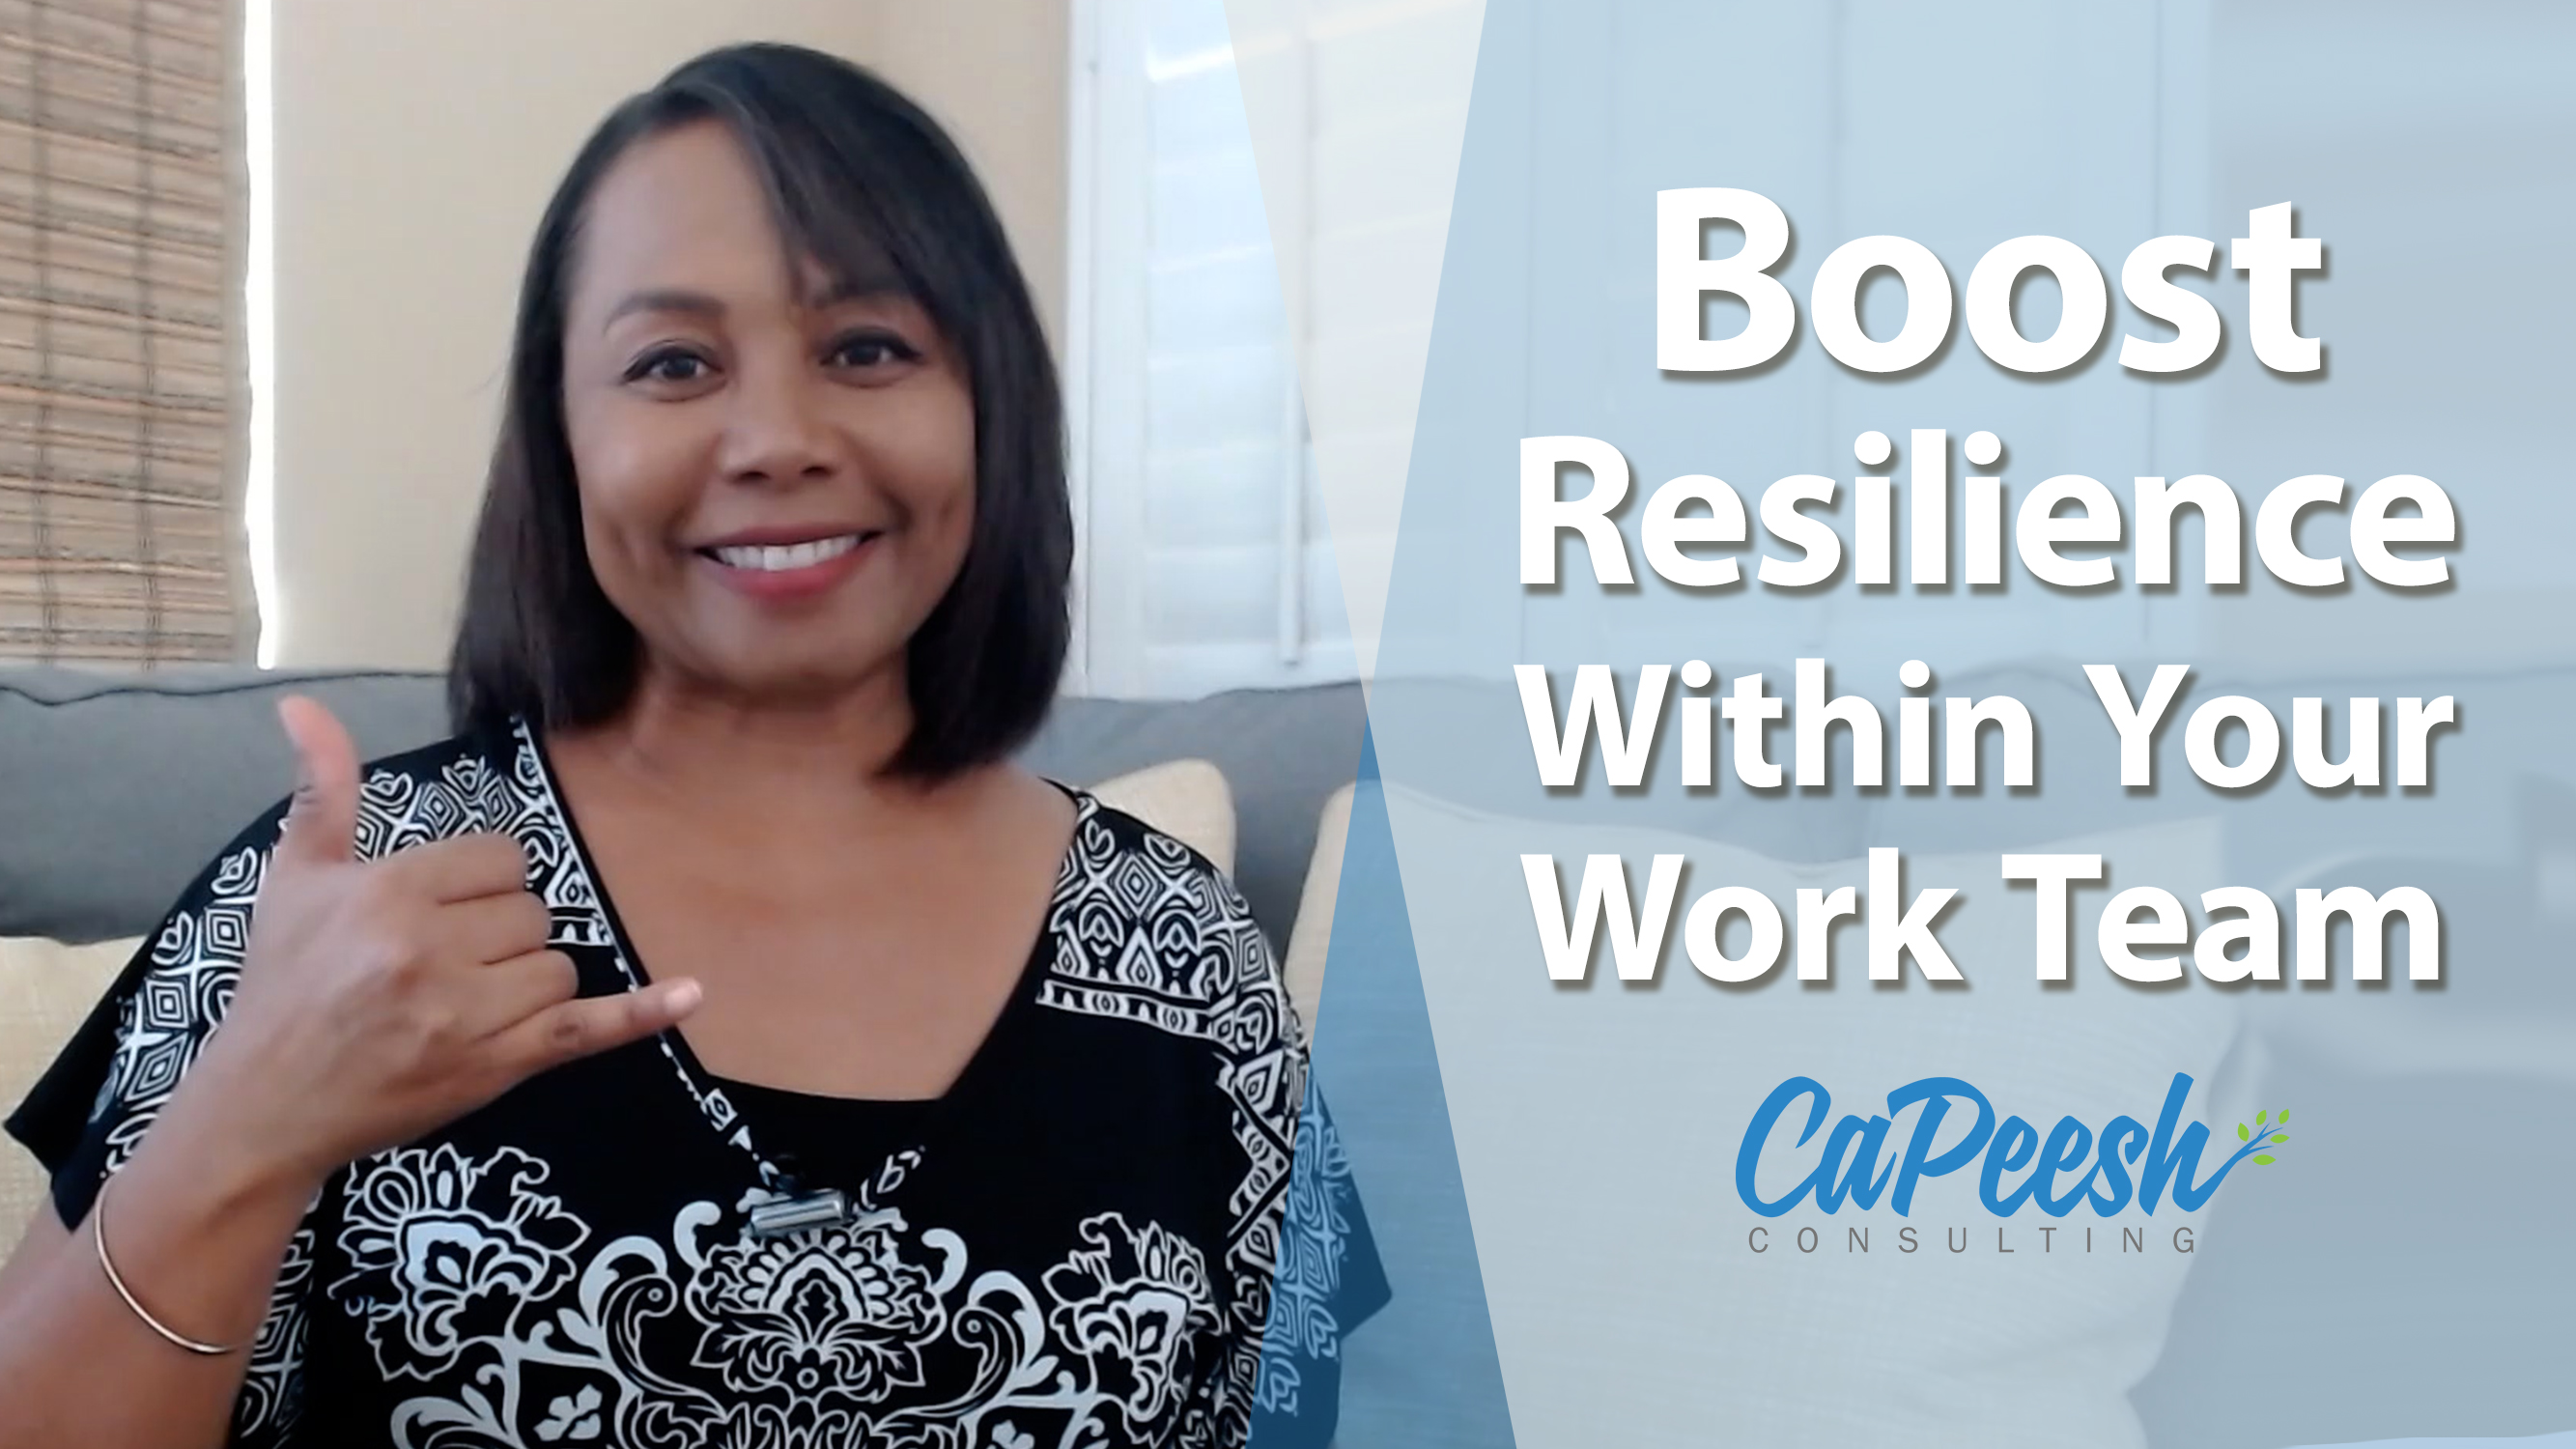 Boosting Your Resilience